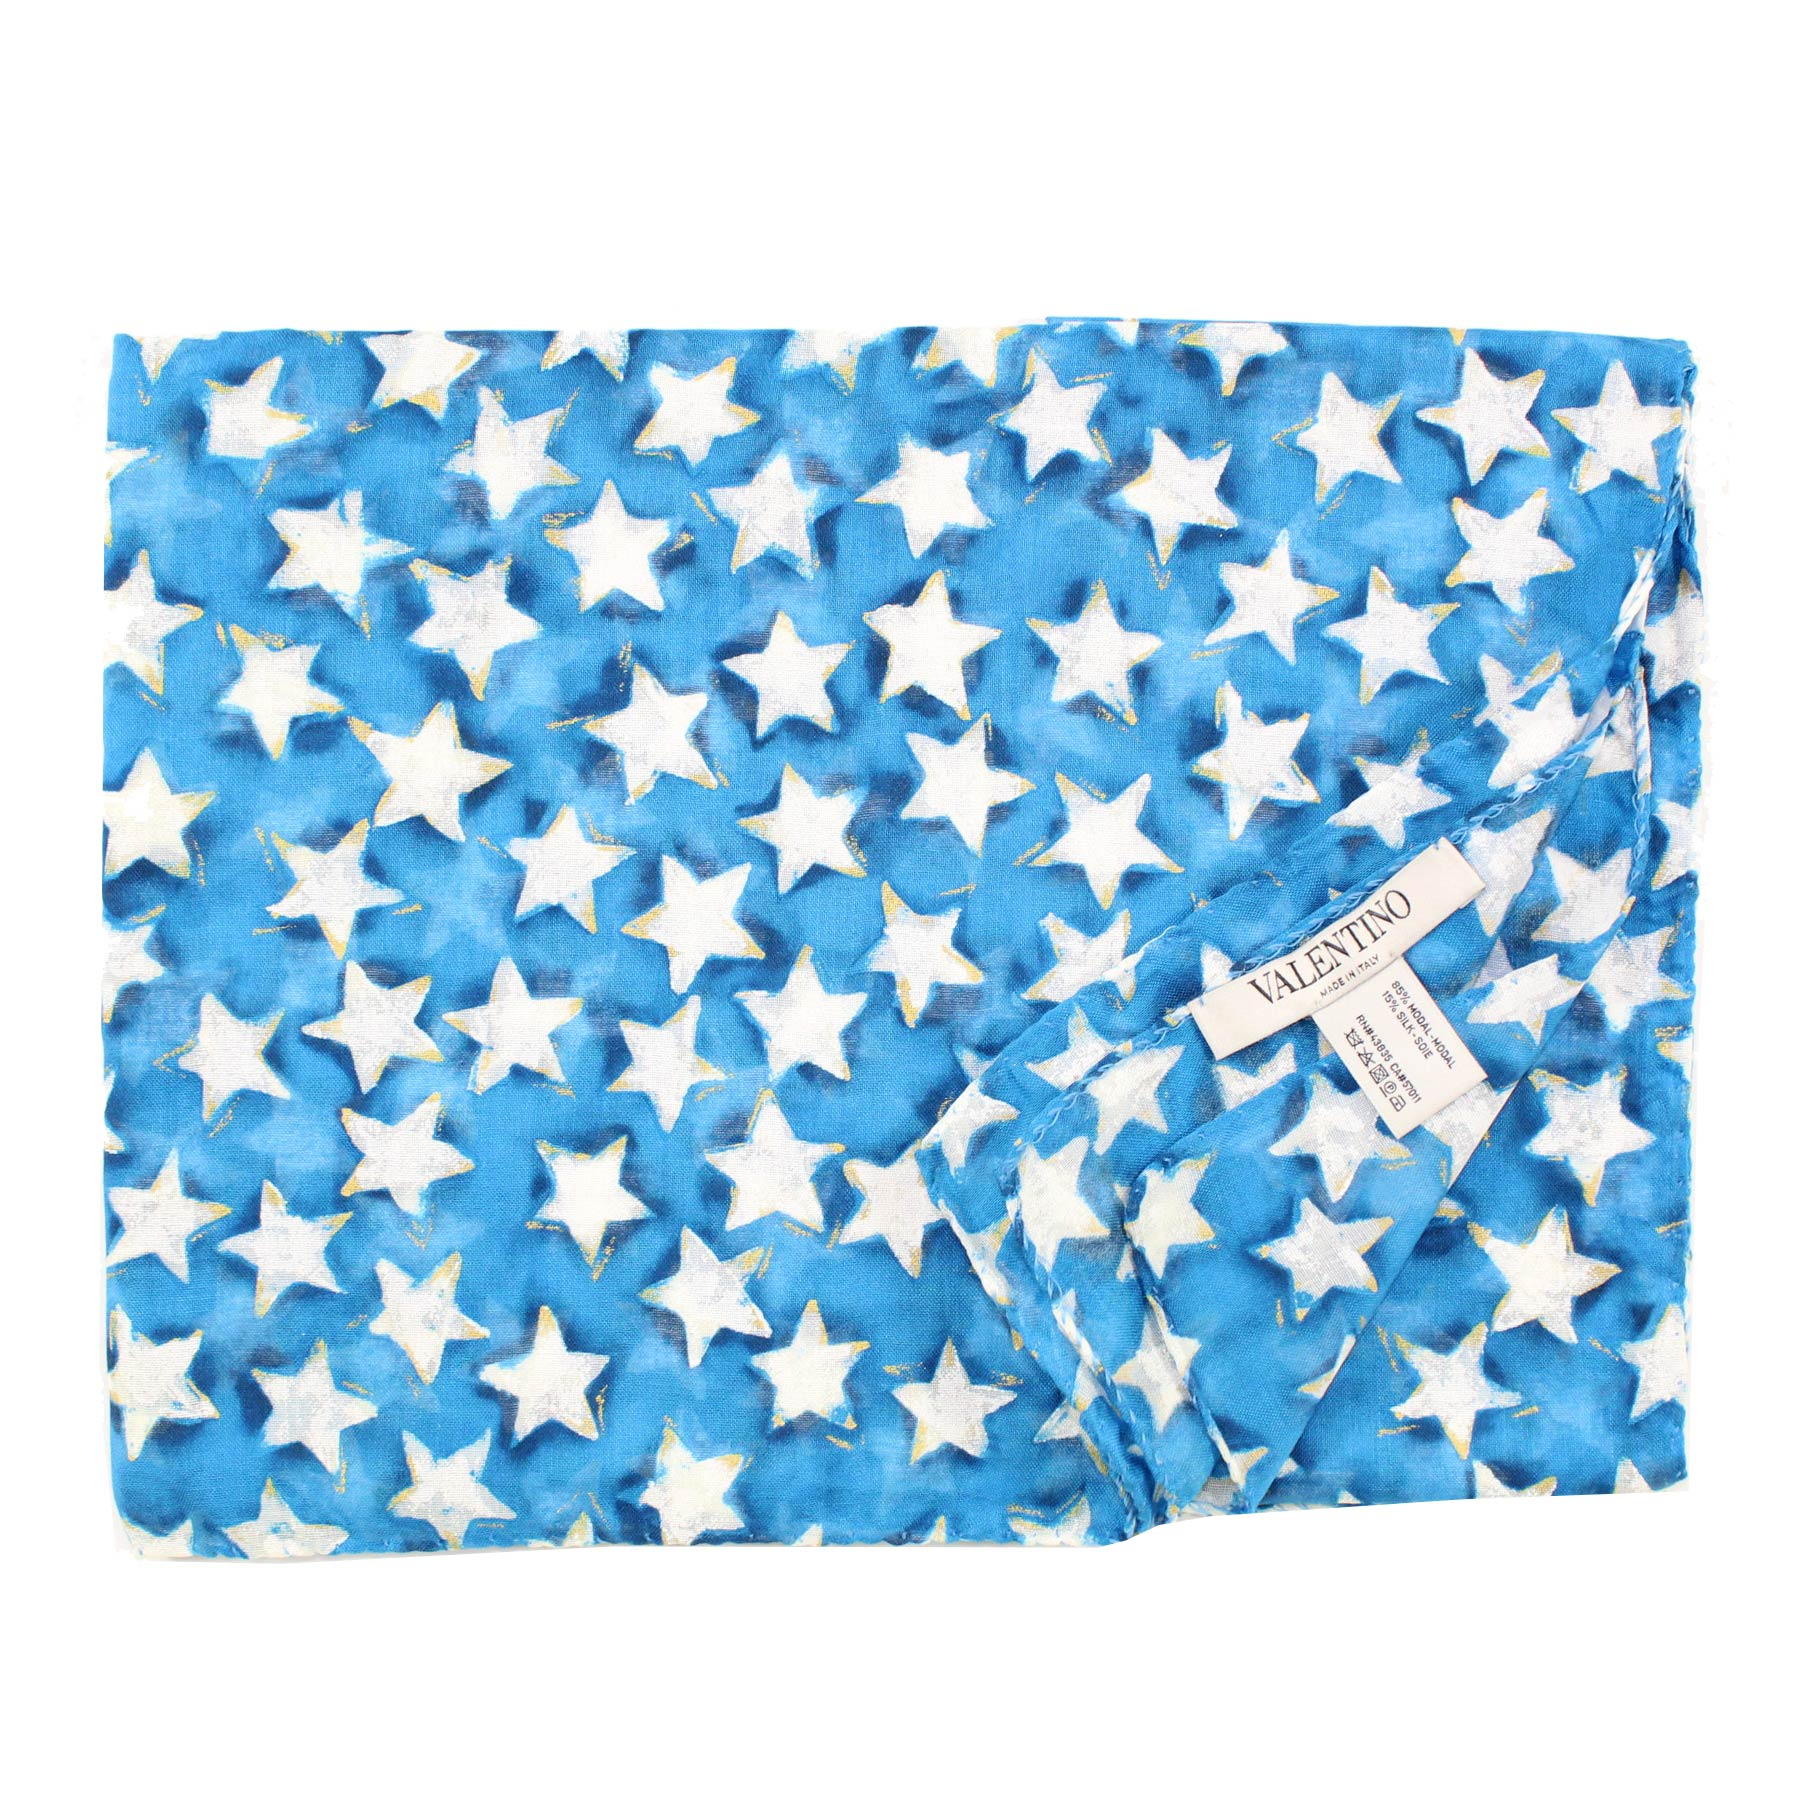 Valentino Scarf White Aqua Blue Stars - Extra Large Wrap FINAL SALE